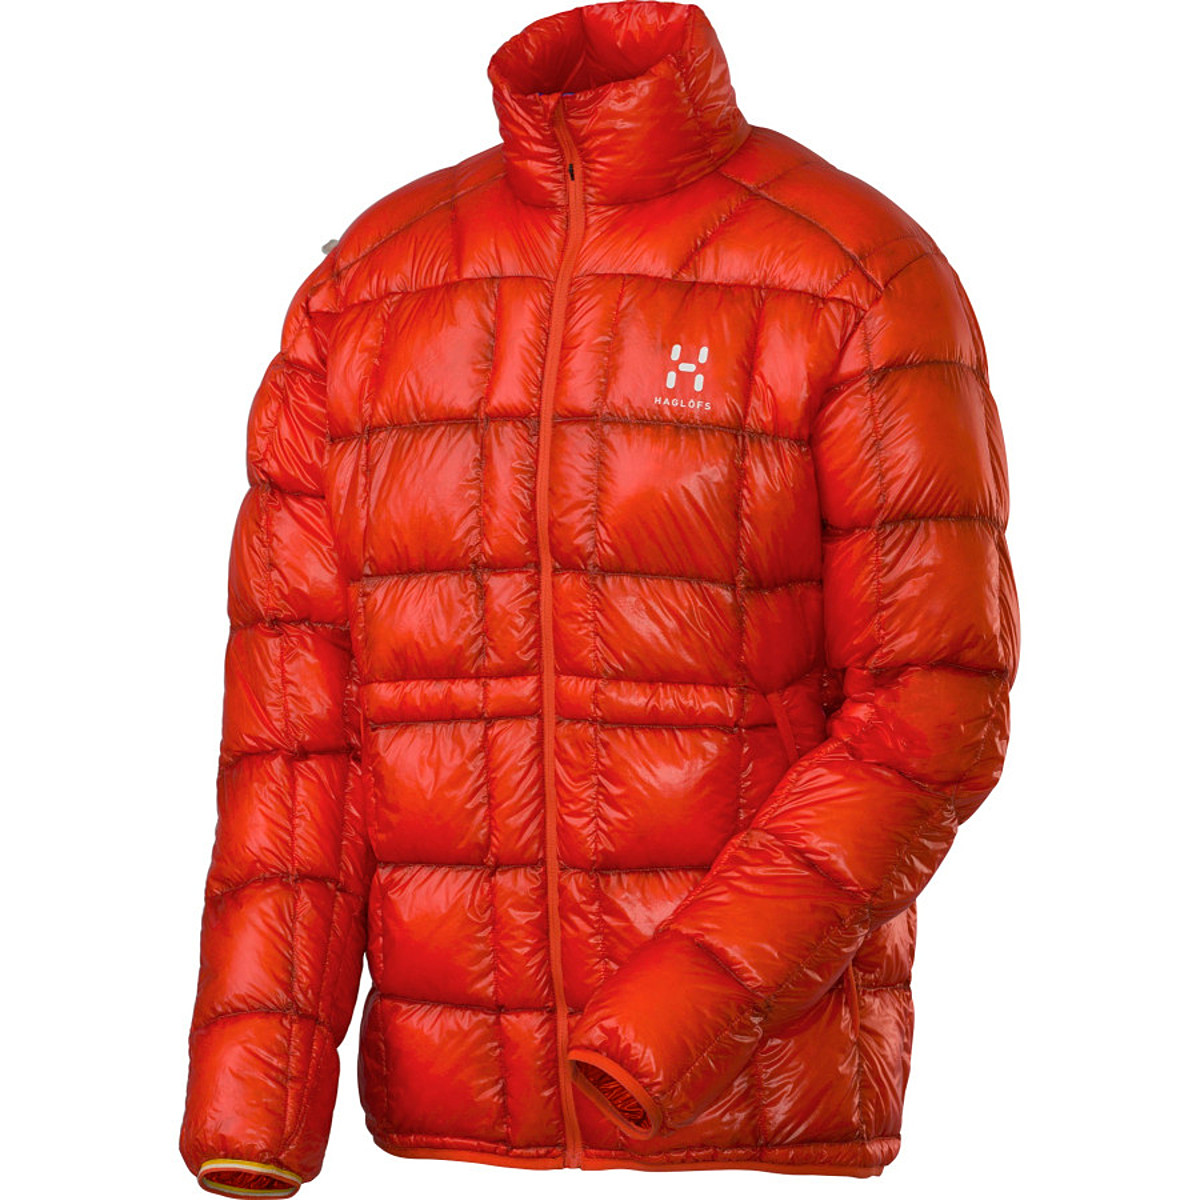 photo of a Haglofs outdoor clothing product